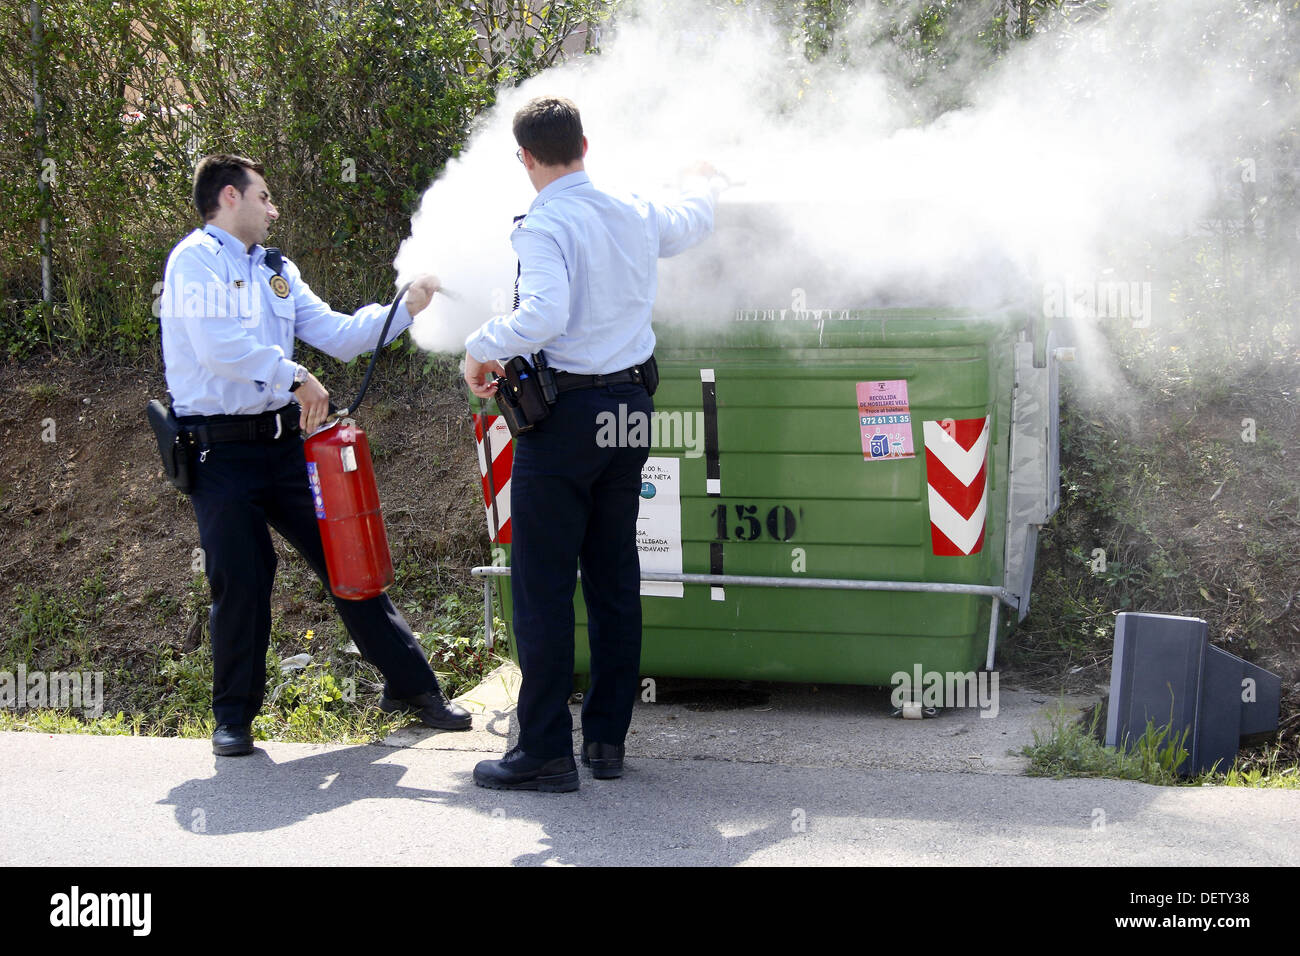 Local police fighting a fire in a rubbish container. - Stock Image